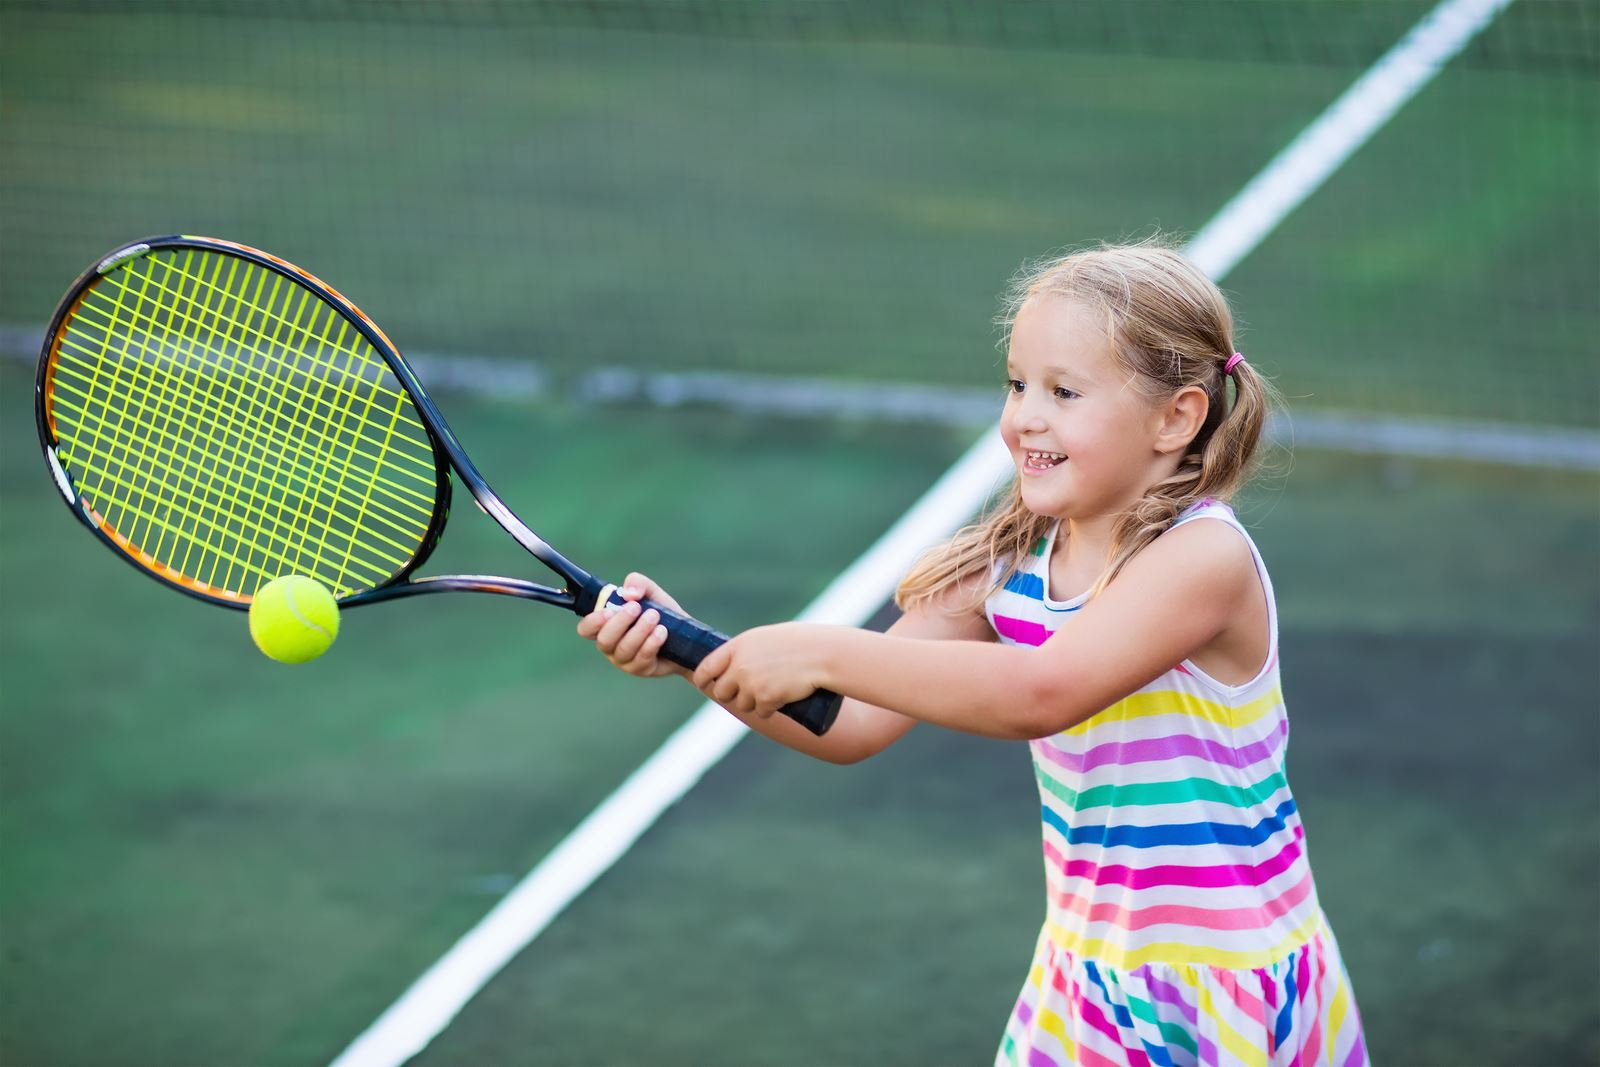 Girl, about 8 years old, swinging tennis racket